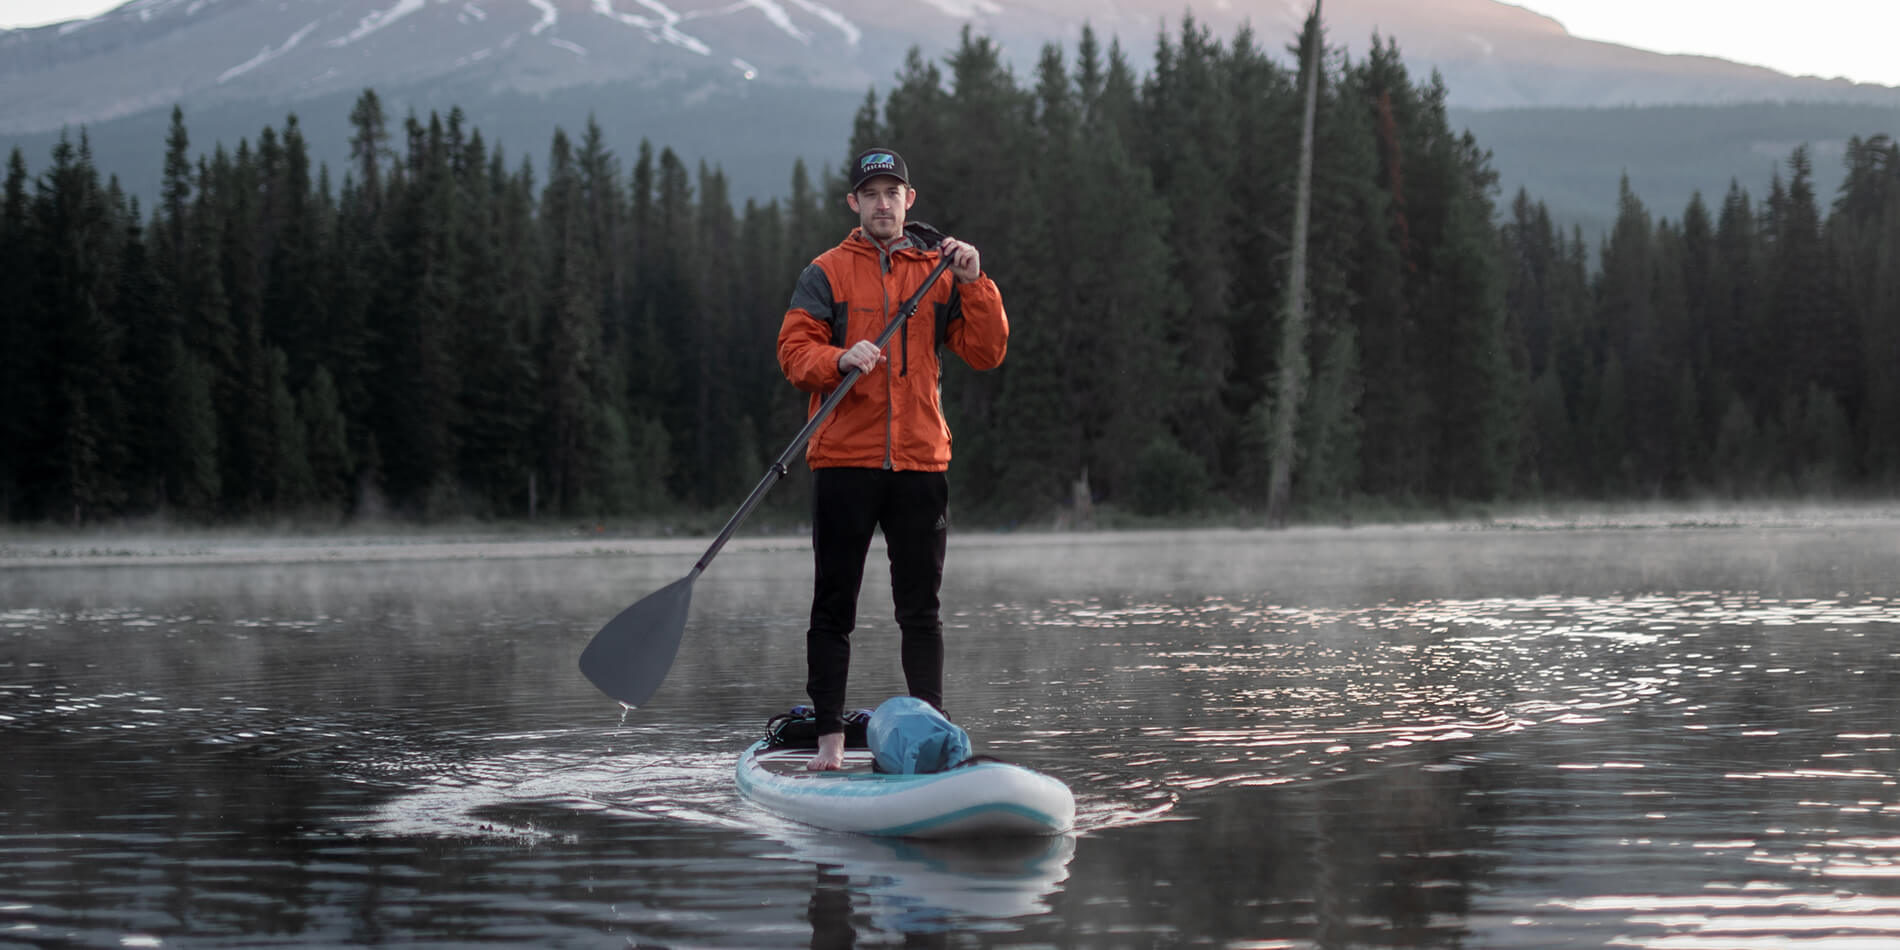 Paddle Boarding with Gear: Bungees